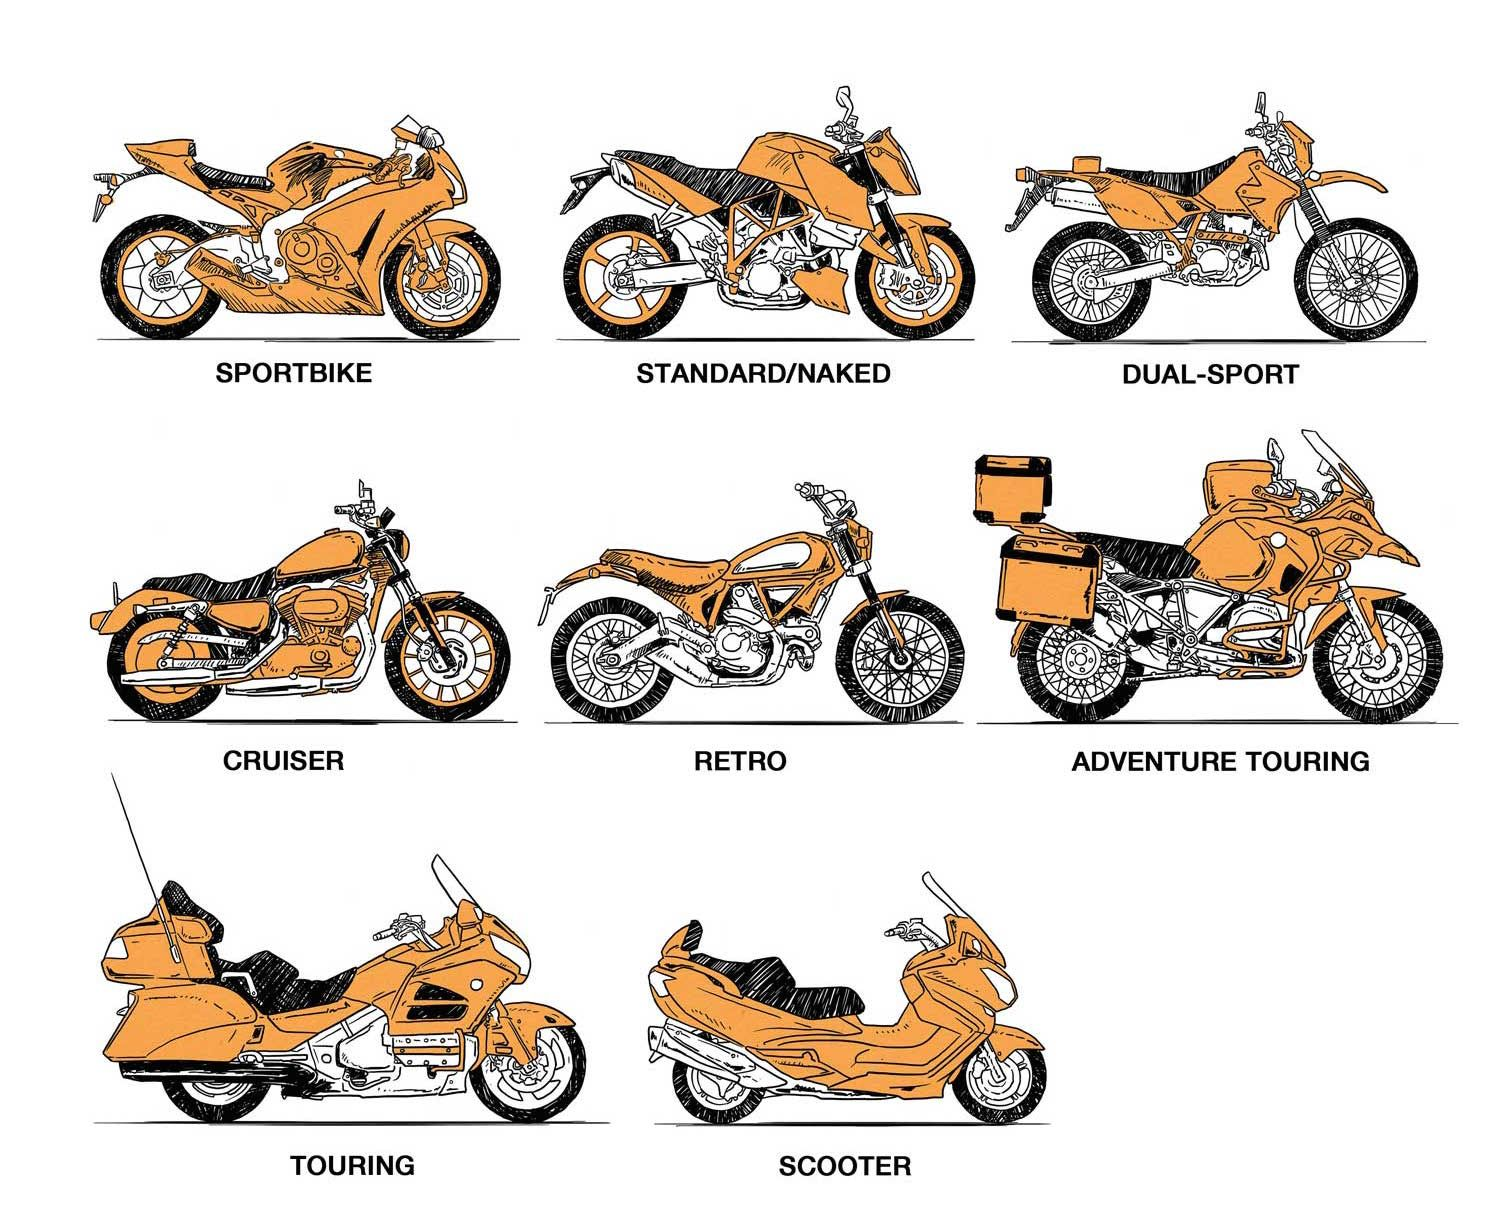 how to choose the right type of motorcycle for your needs motorcycle travel pinterest. Black Bedroom Furniture Sets. Home Design Ideas